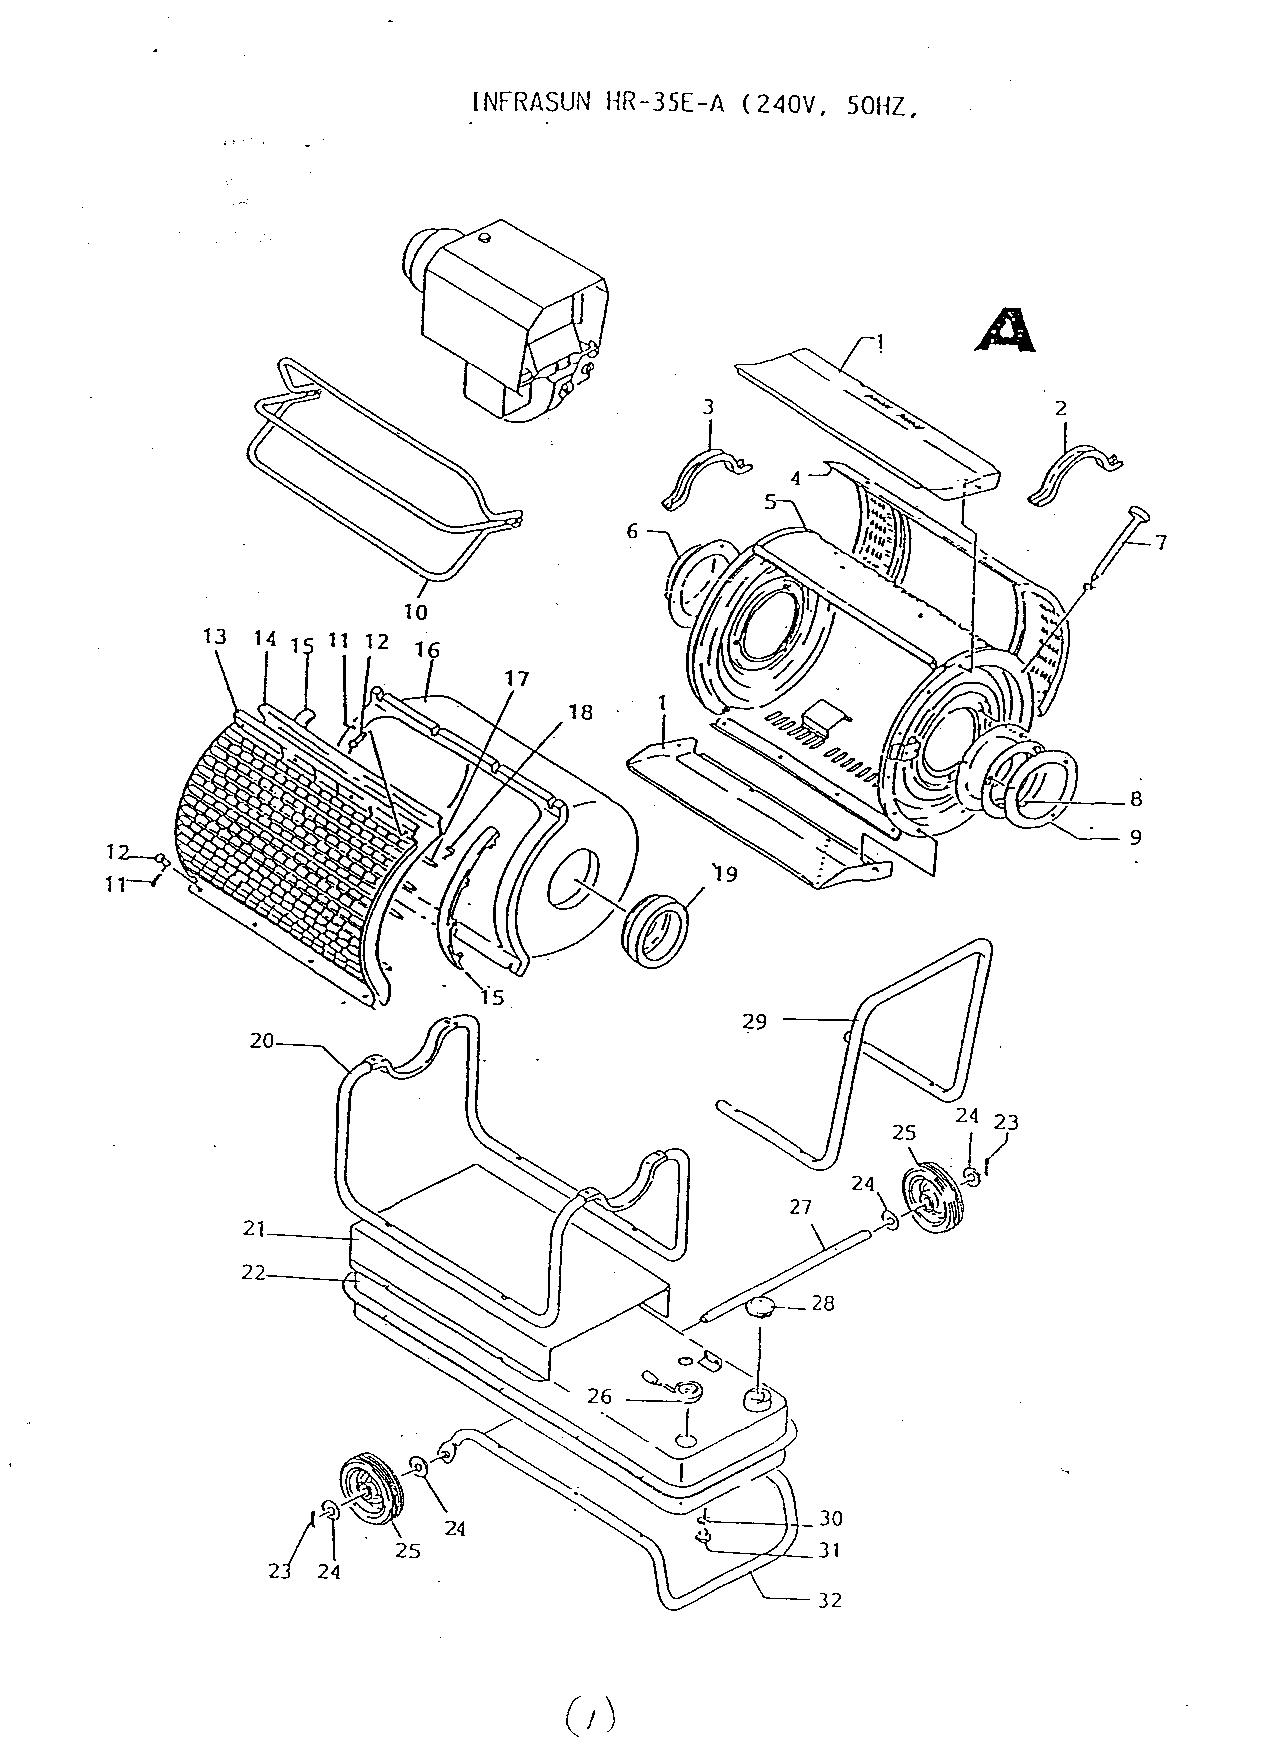 uk infrared heater an infrared heater for the uk orion infrasun hr 35e a parts diagram exploded view 001